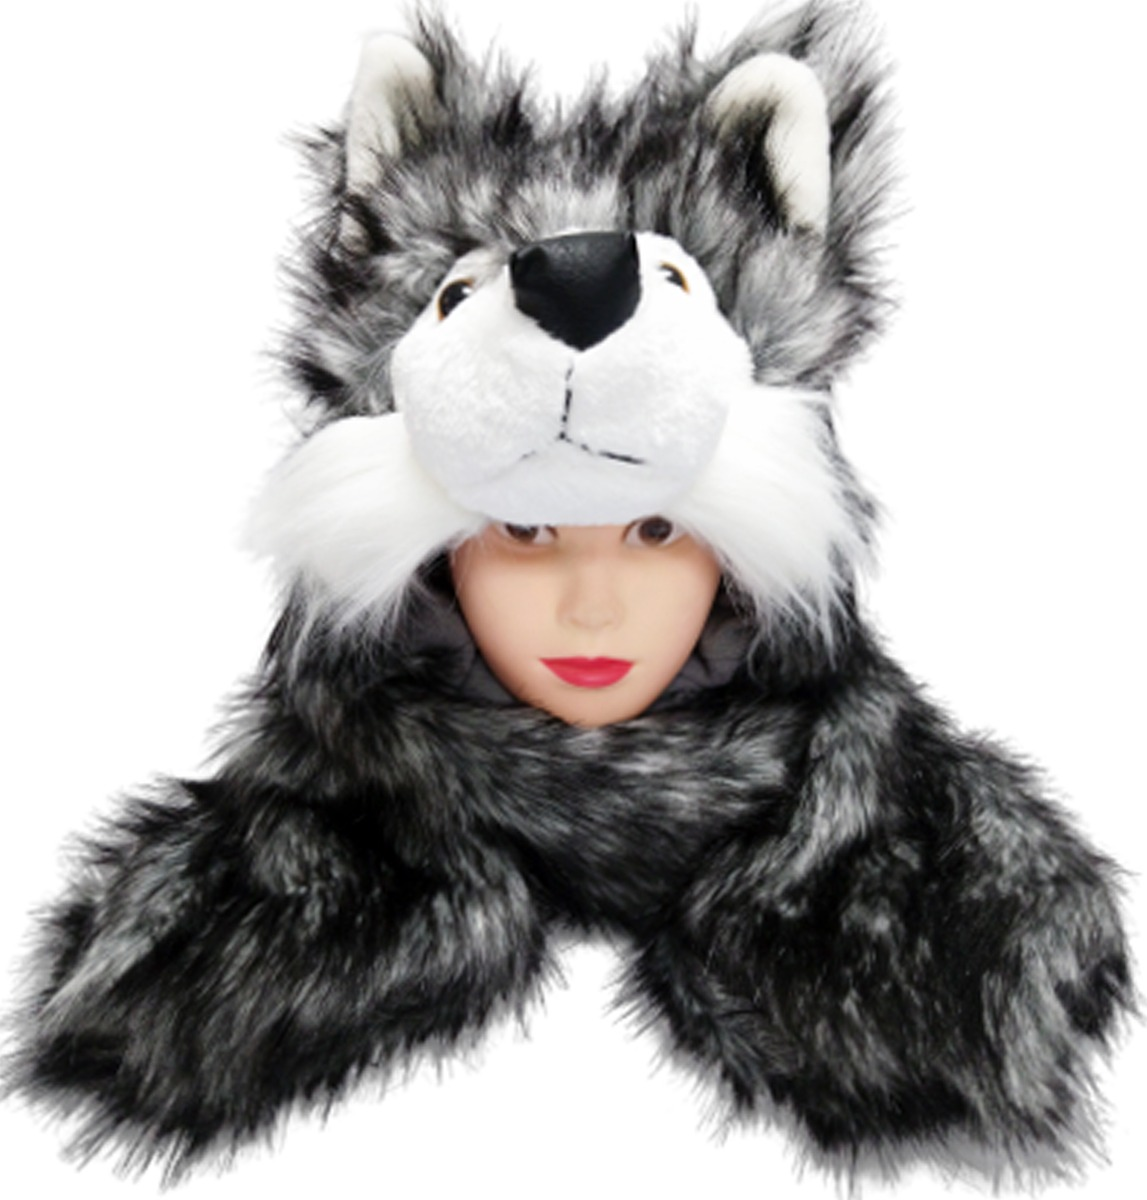 Soft Faux Fur Husky Animal Character Builtin Paws Mittens Hat (094)